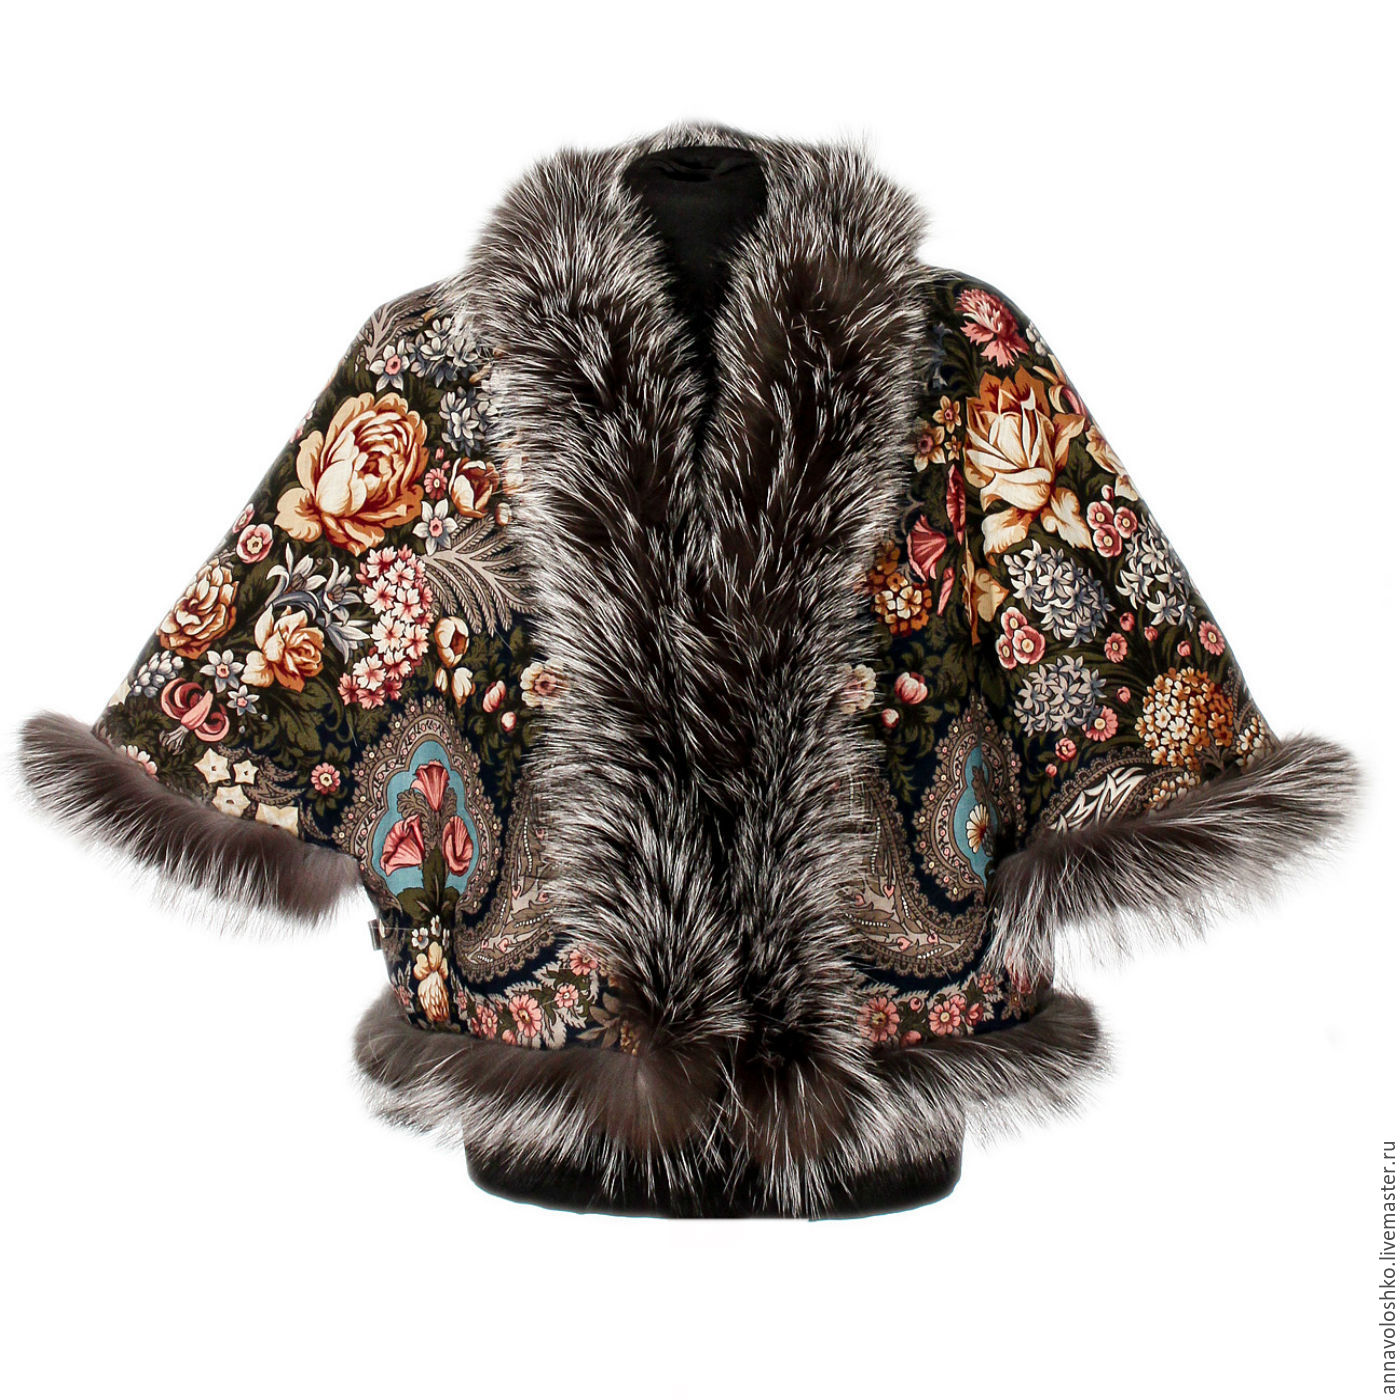 Vests, ponchos, jackets, jackets from pavloposad shawls with fur trimming.